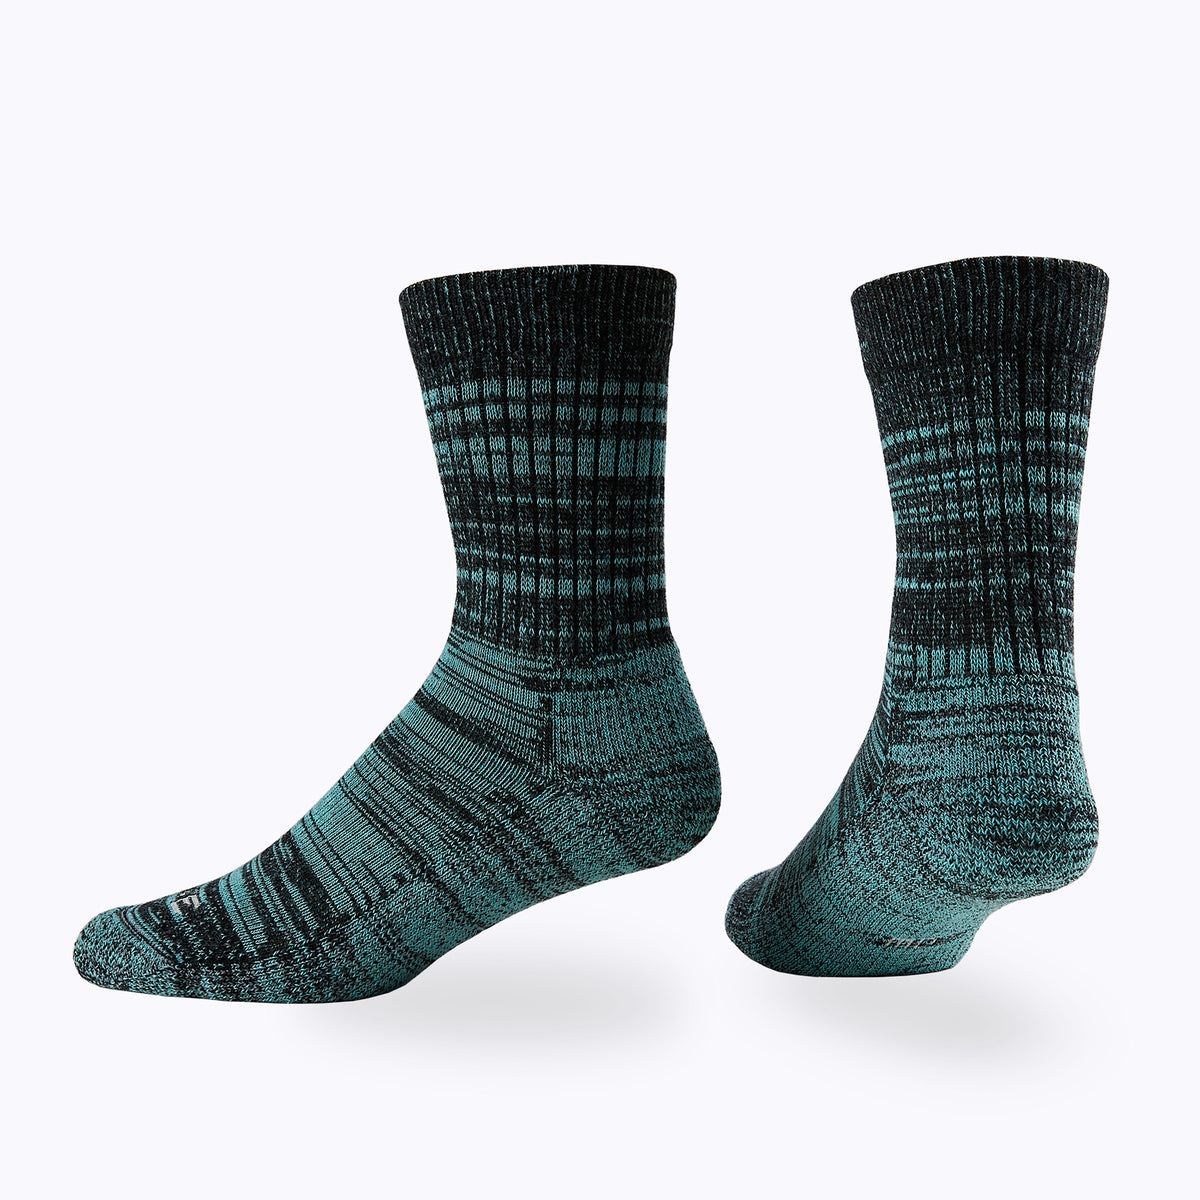 Kelsey 2 Pack Mix Women's Crew Socks -  by Canyon x Lane Socks